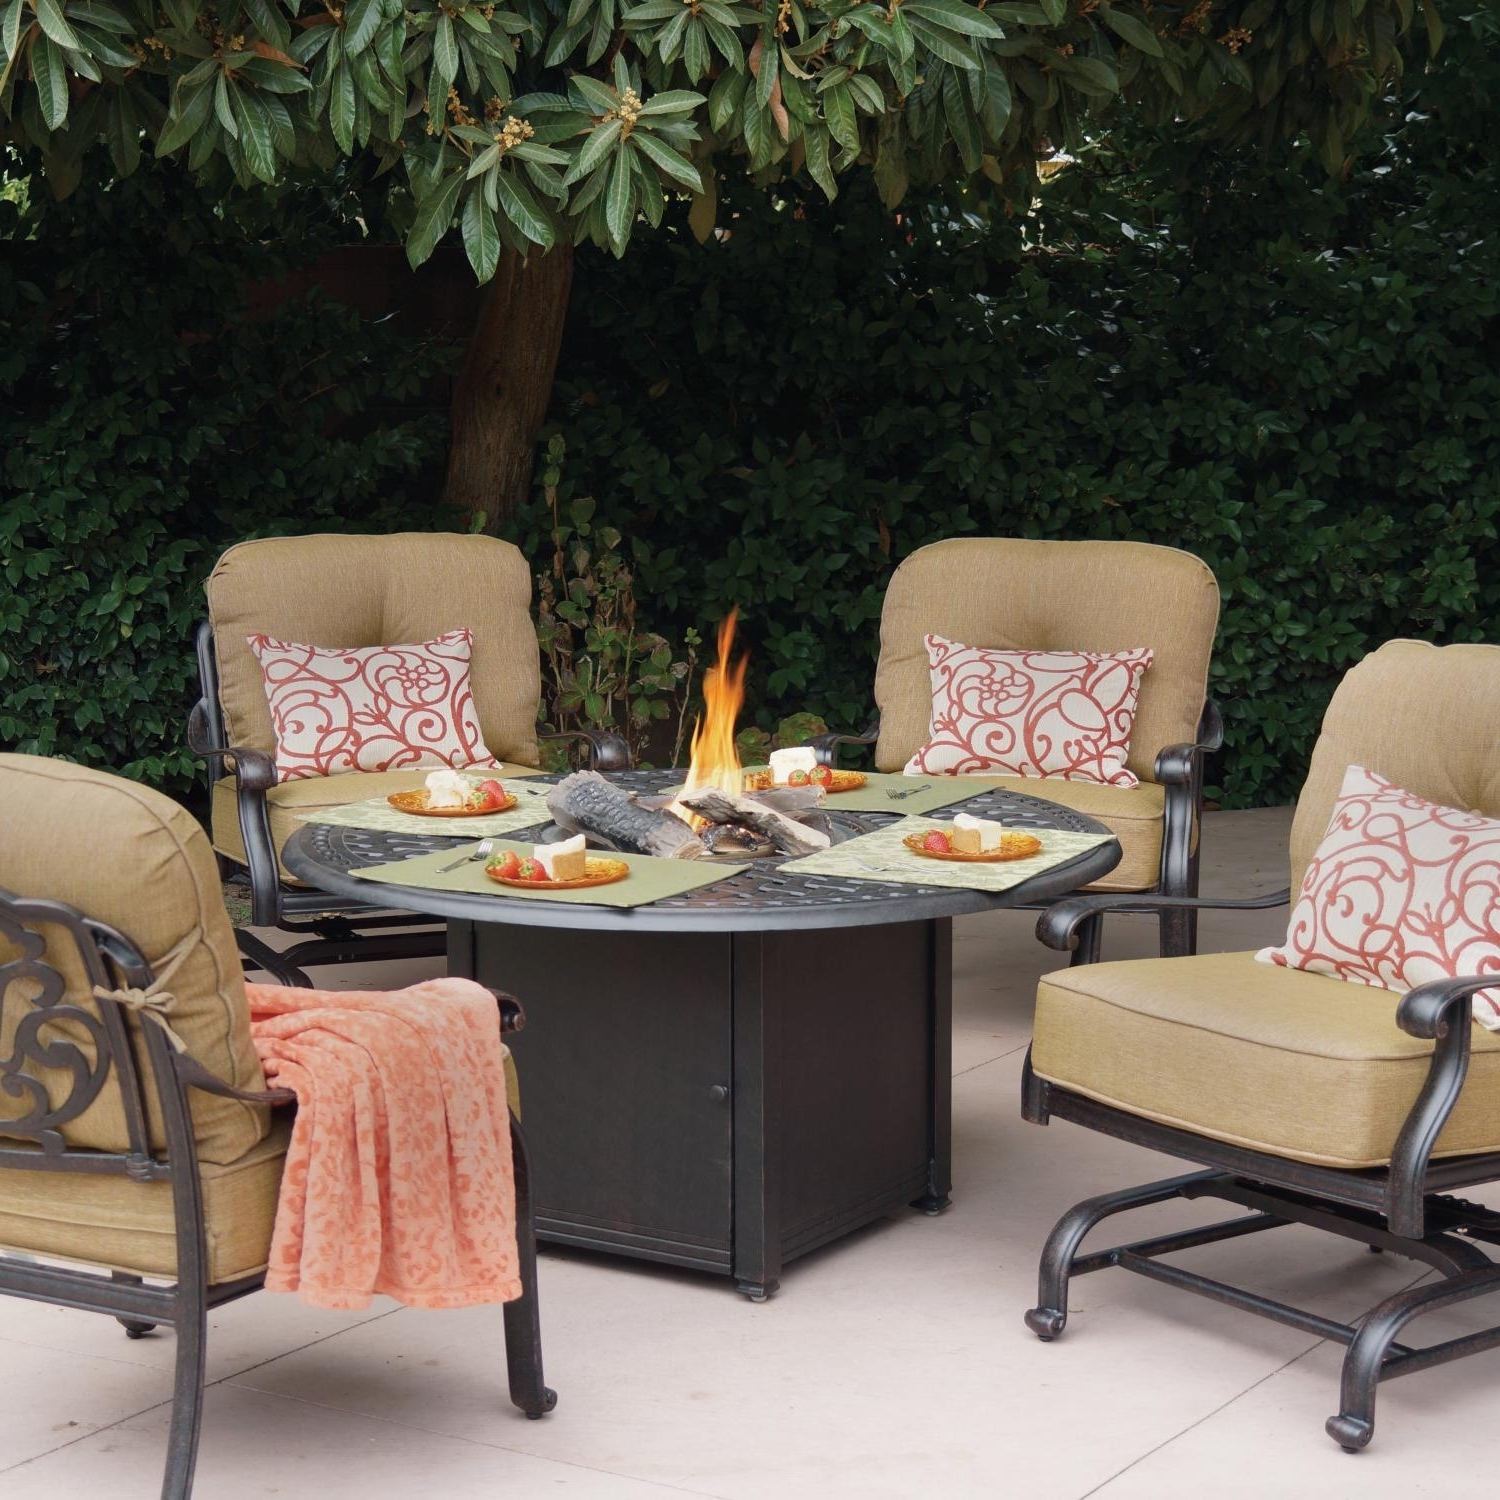 Fashionable Patio Conversation Sets Under $500 Pertaining To Premium Outdoor Seating Sets (View 13 of 20)